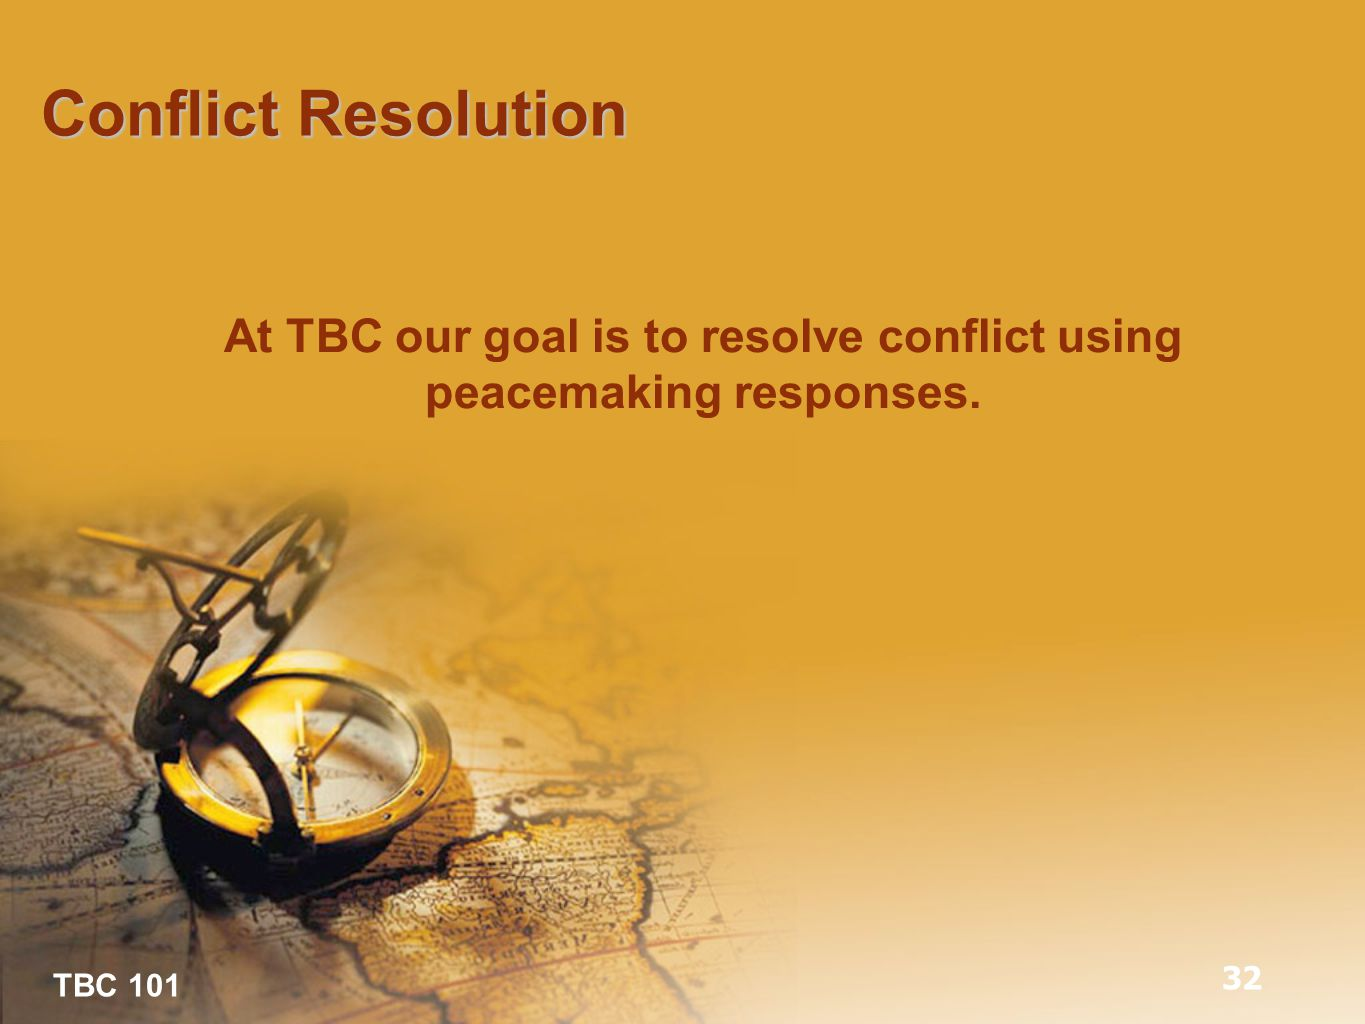 TBC 101 Conflict Resolution At TBC our goal is to resolve conflict using peacemaking responses. 32